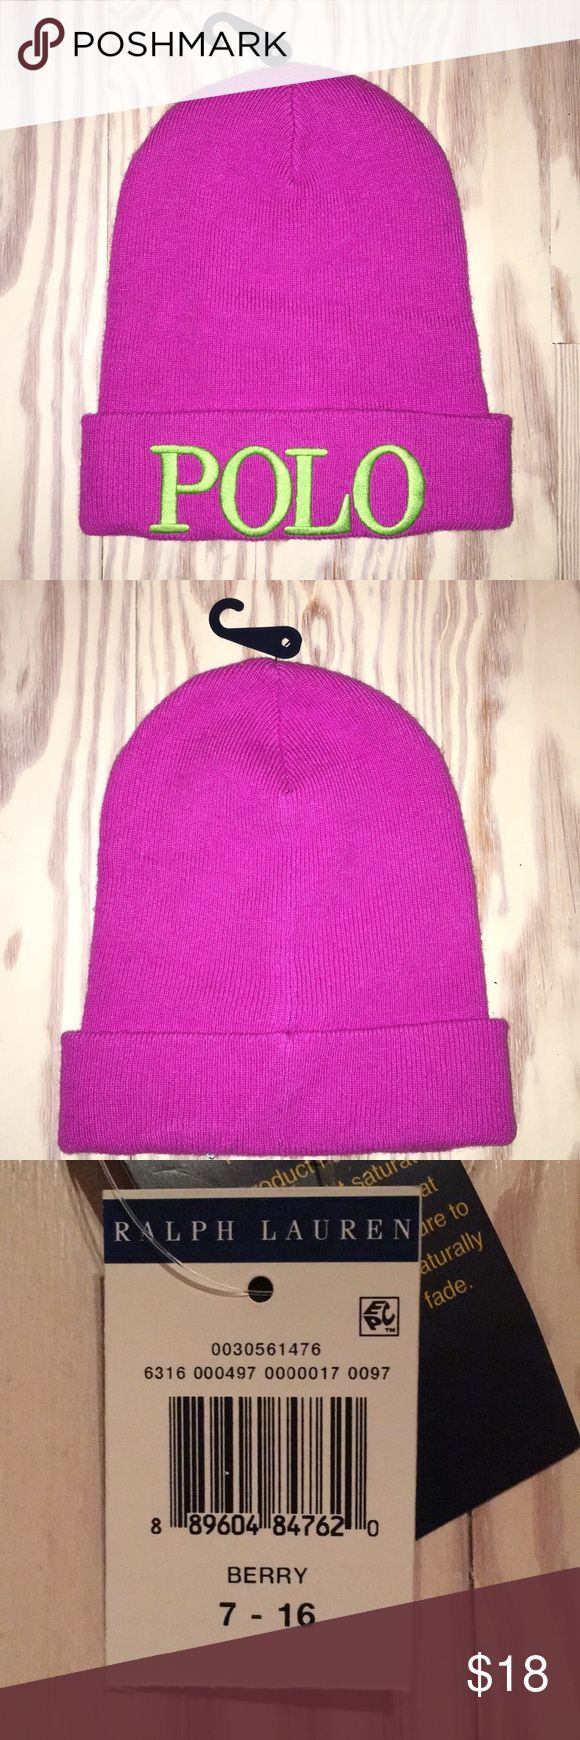 Polo Beanie Neon Berry Polo Beanie with Lime Green Embroidery. Girls (Kids) size 7-16.  Will also fit women!  Brand new with tags.  Made of Viscose, Nylon, Cotton, Wool, Cashmere. Polo by Ralph Lauren Accessories Hats